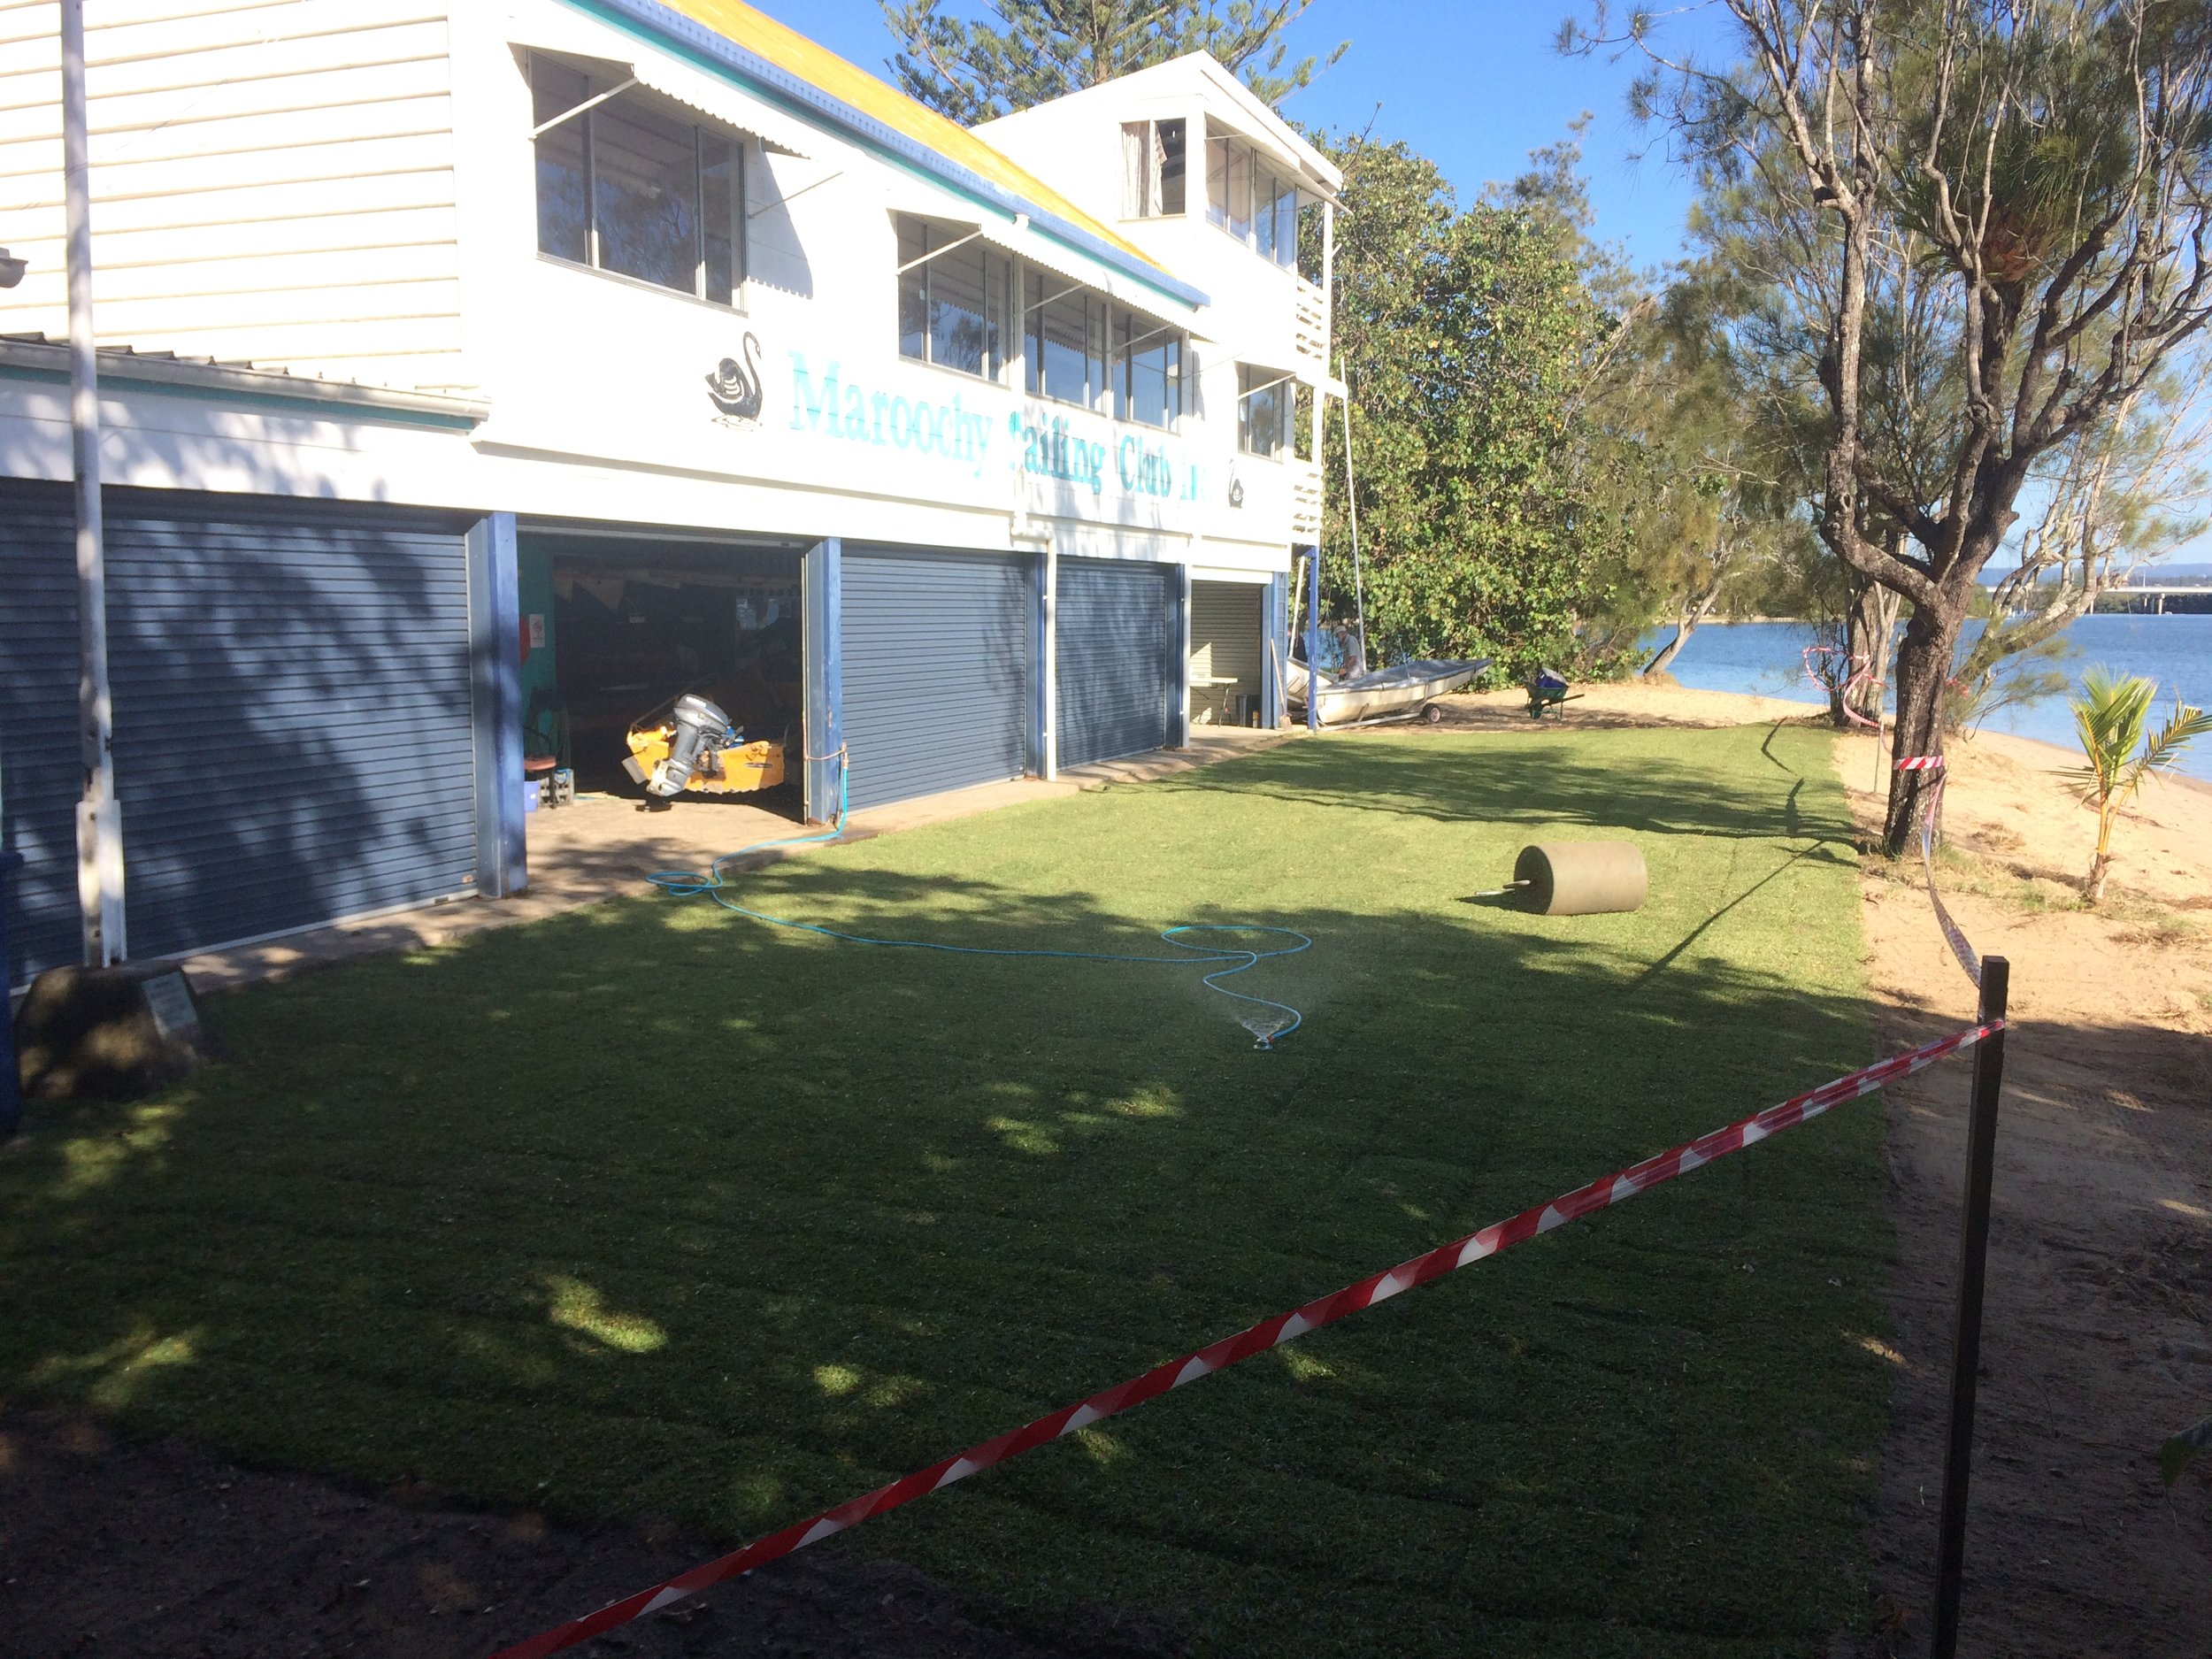 New rigging lawn, 2017